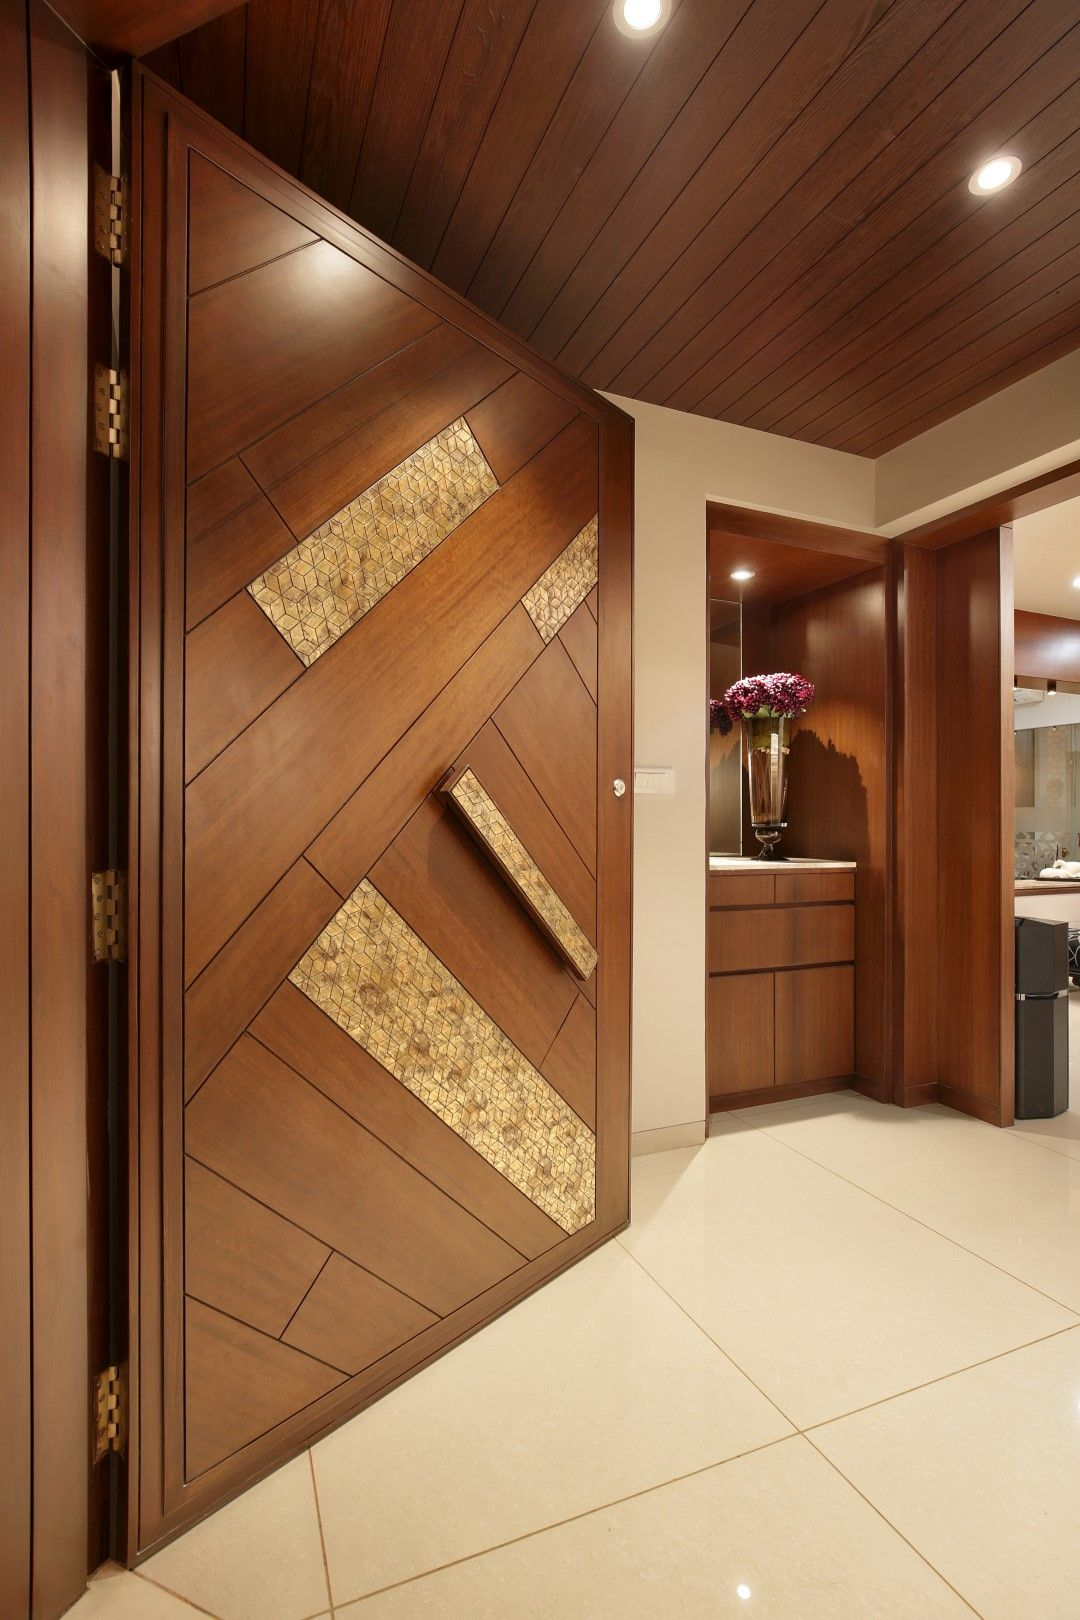 Main Door Design Door Design Modern Wood: 3 BHK Flat Interiors - The Oak Woods